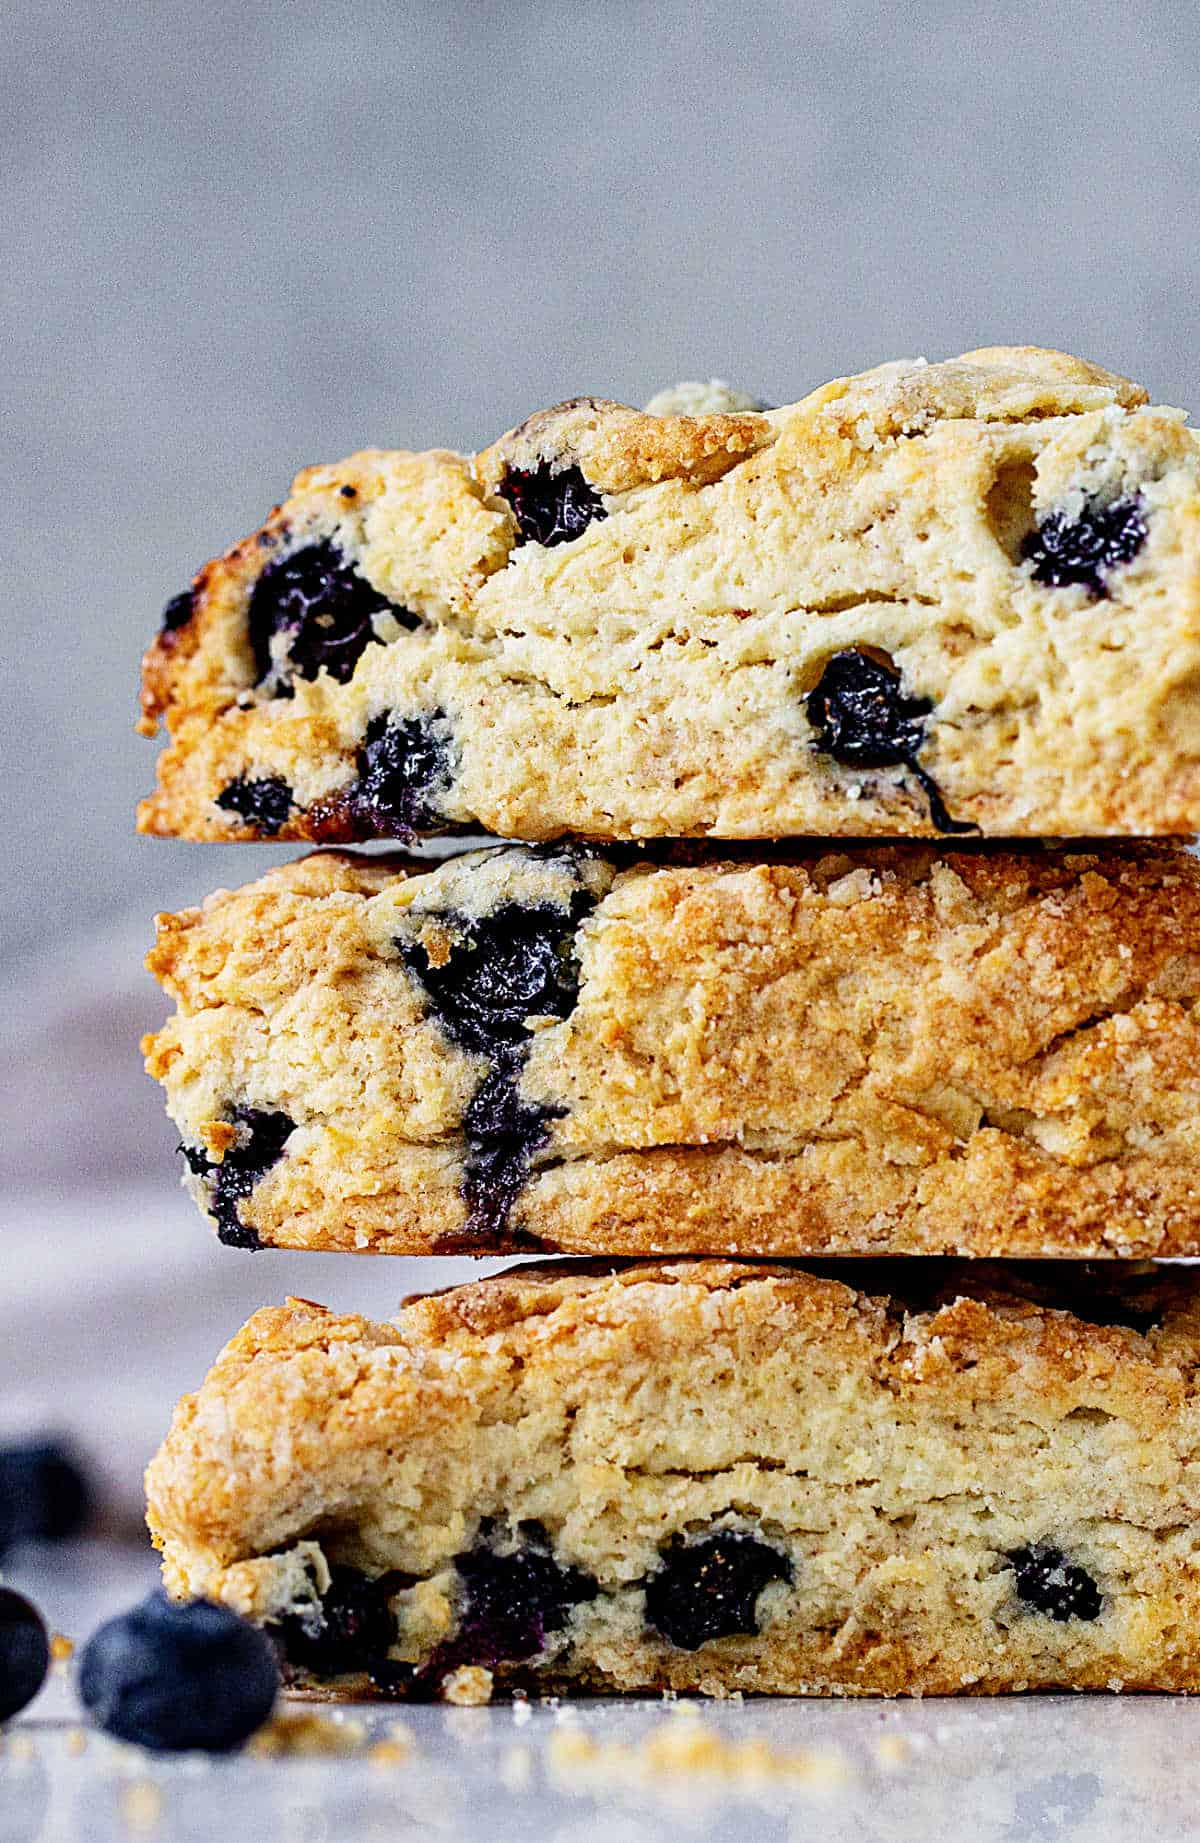 Very close up of partial stack of blueberry scones, grey blue background